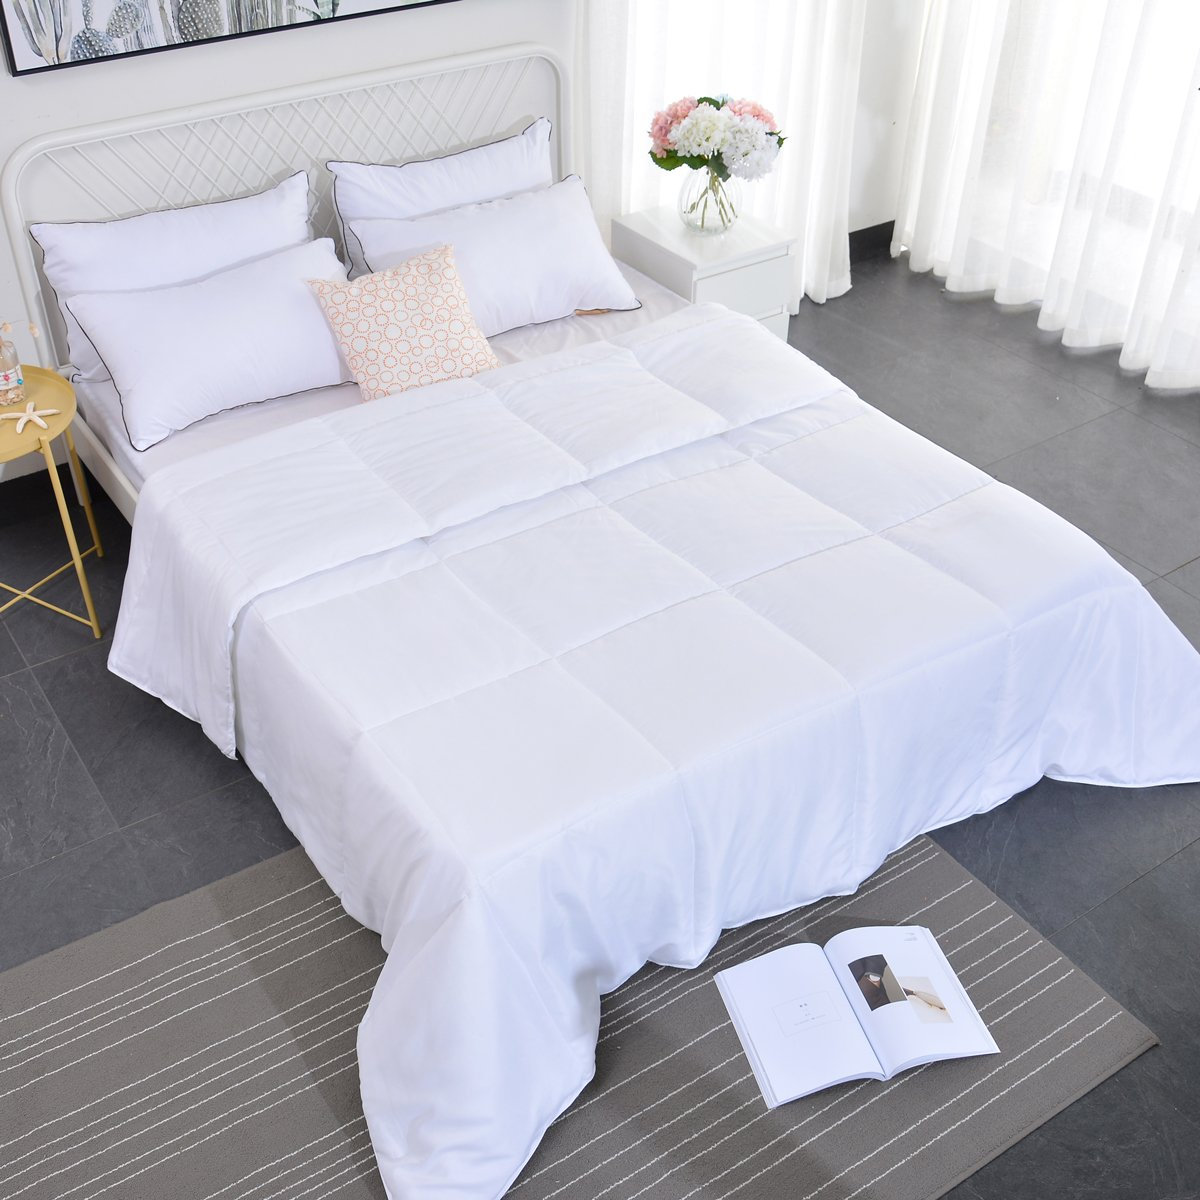 Ancaixin Spring Lightweight Queen Comforter Down Alternative Lightweight Washable Duvet Set Blanket Quilt Insert with Corner Duvet Tabs for Spring Autumn Winter White-Cloud Queen Size